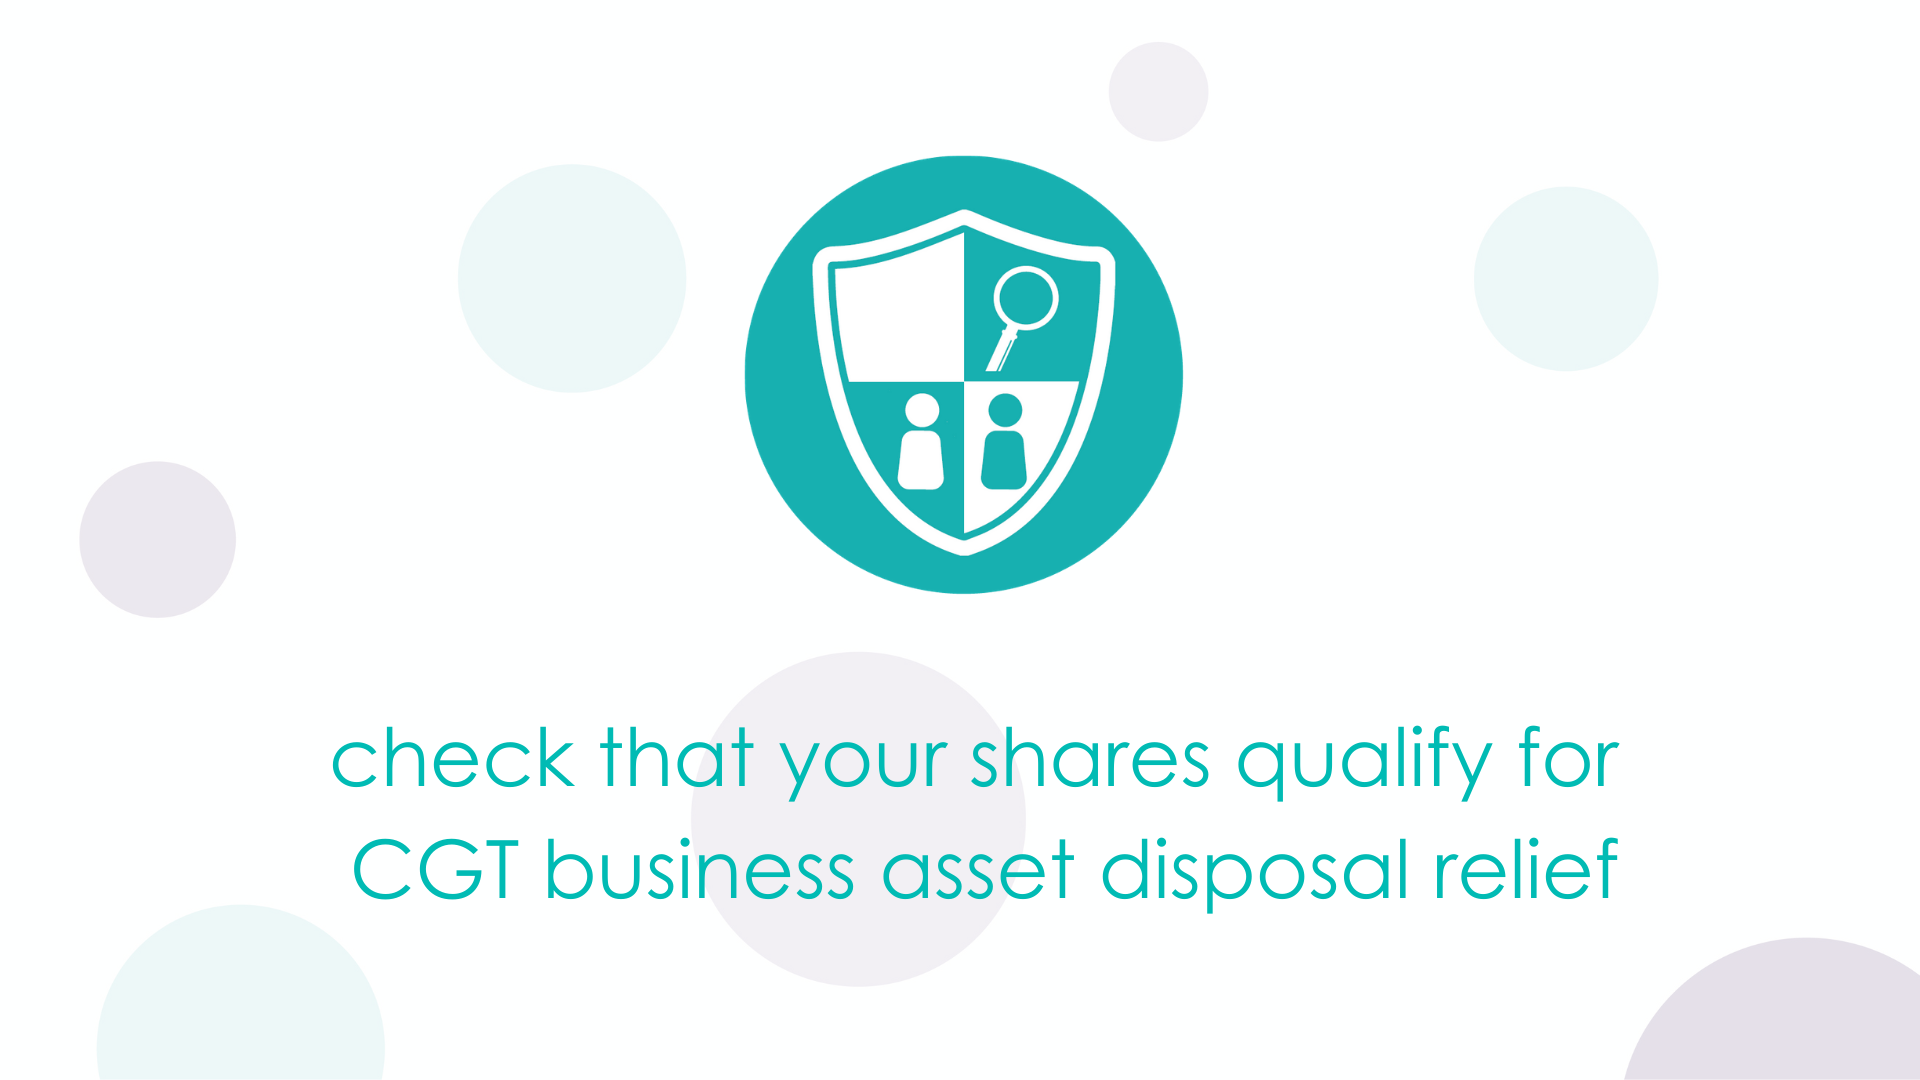 check that your shares qualify for CGT business asset disposal relief